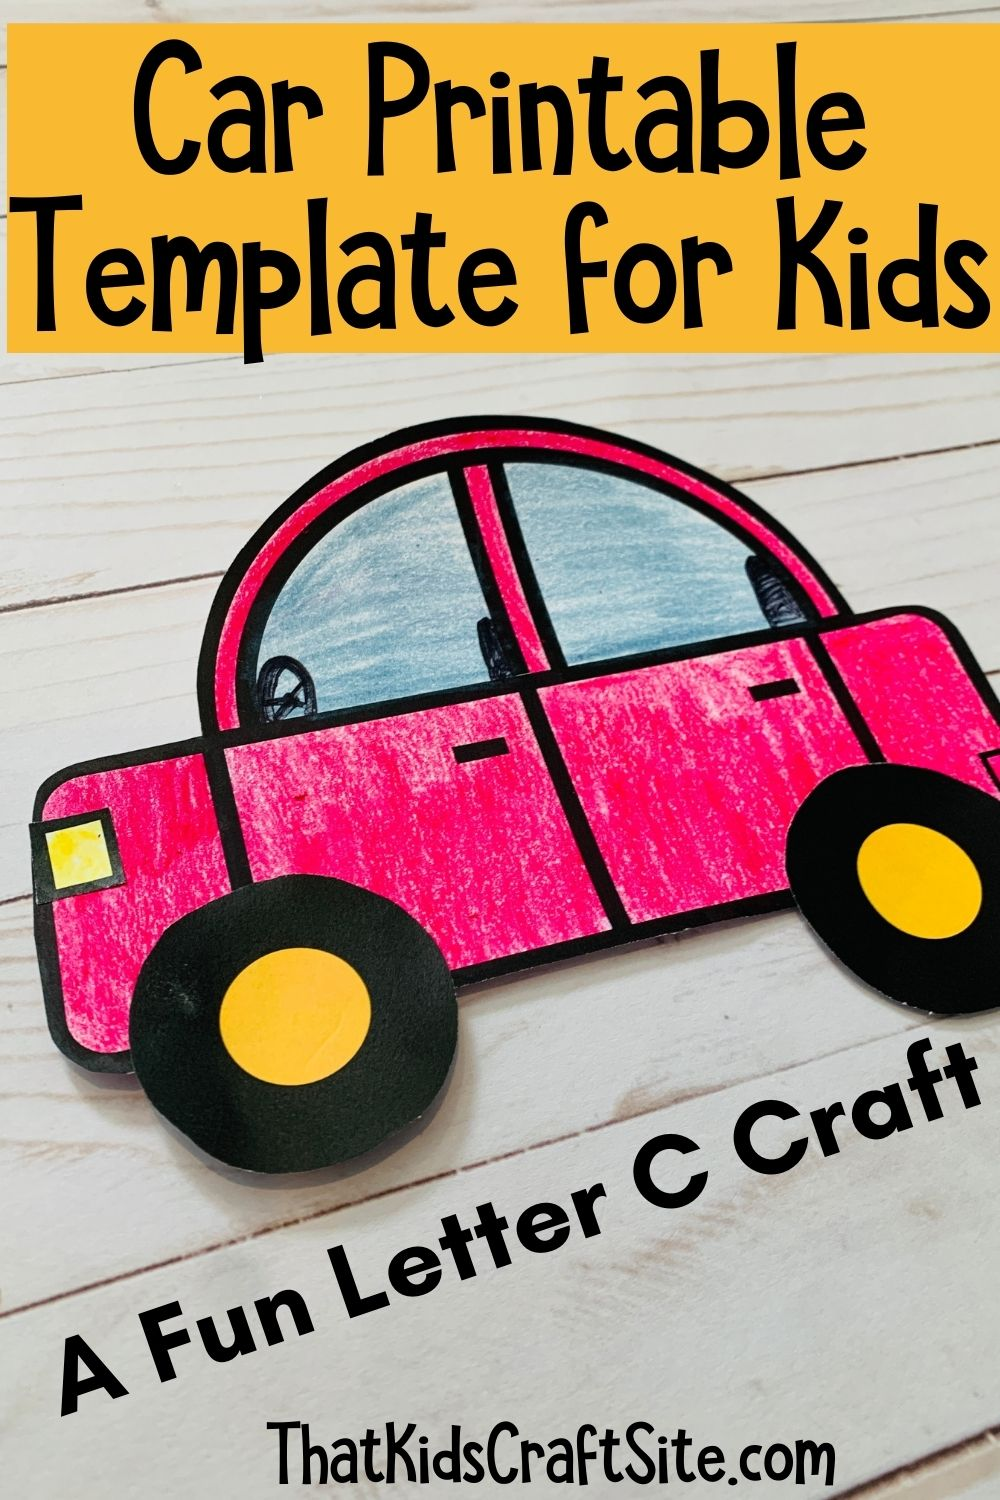 Car Printable Template for Kids - A Fun Letter C Craft